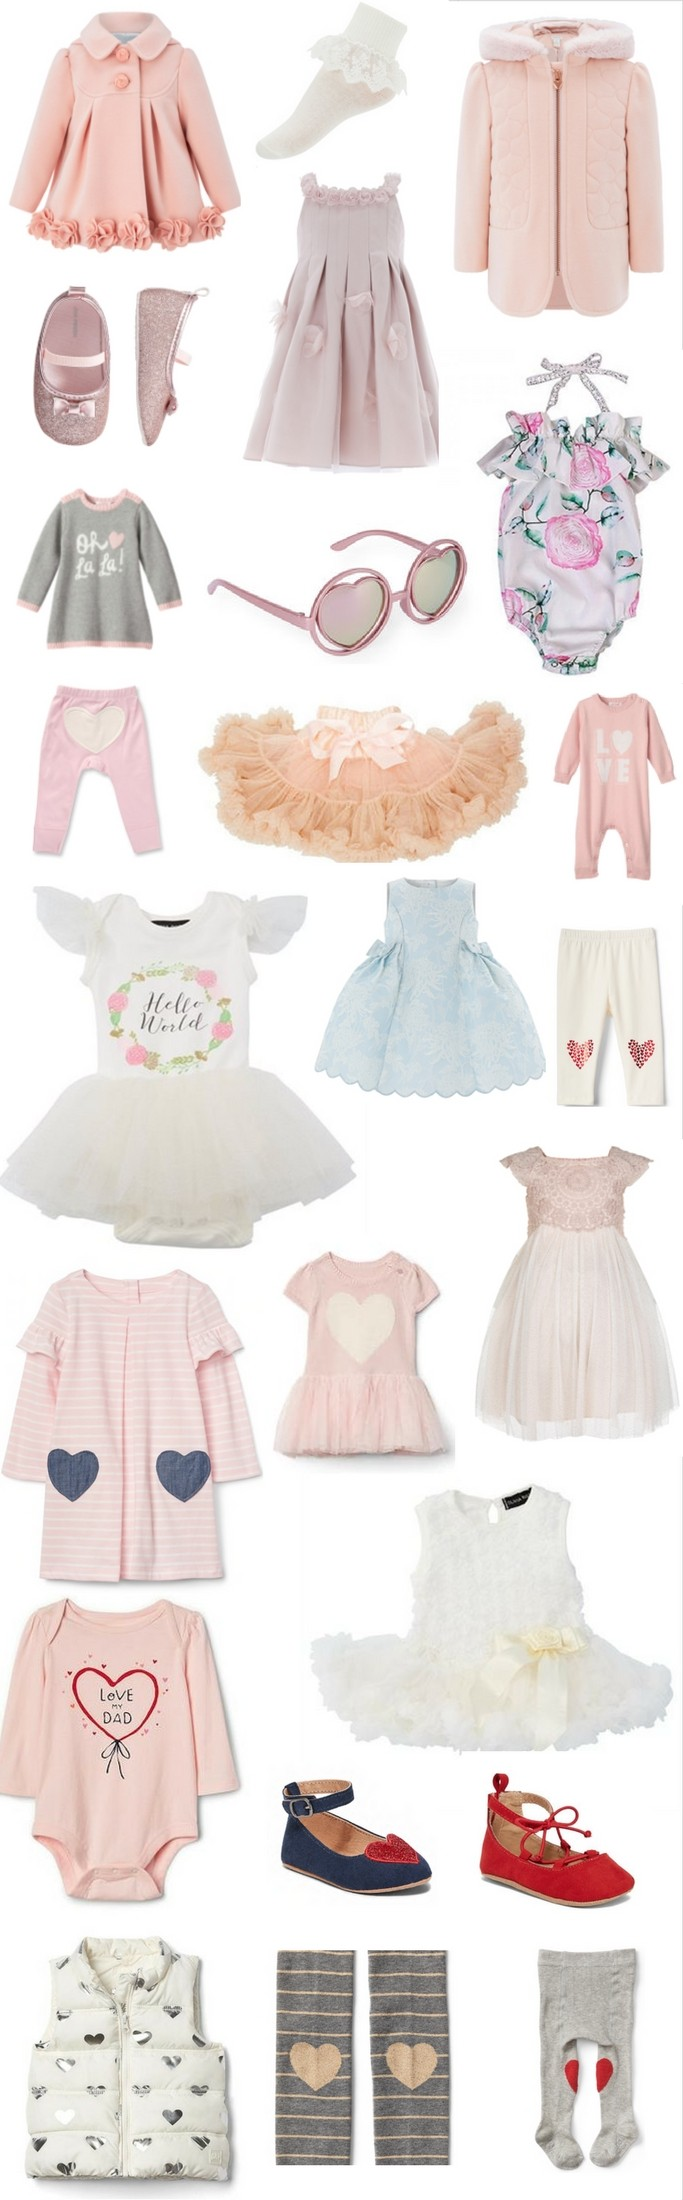 valentines day outfits for baby boys